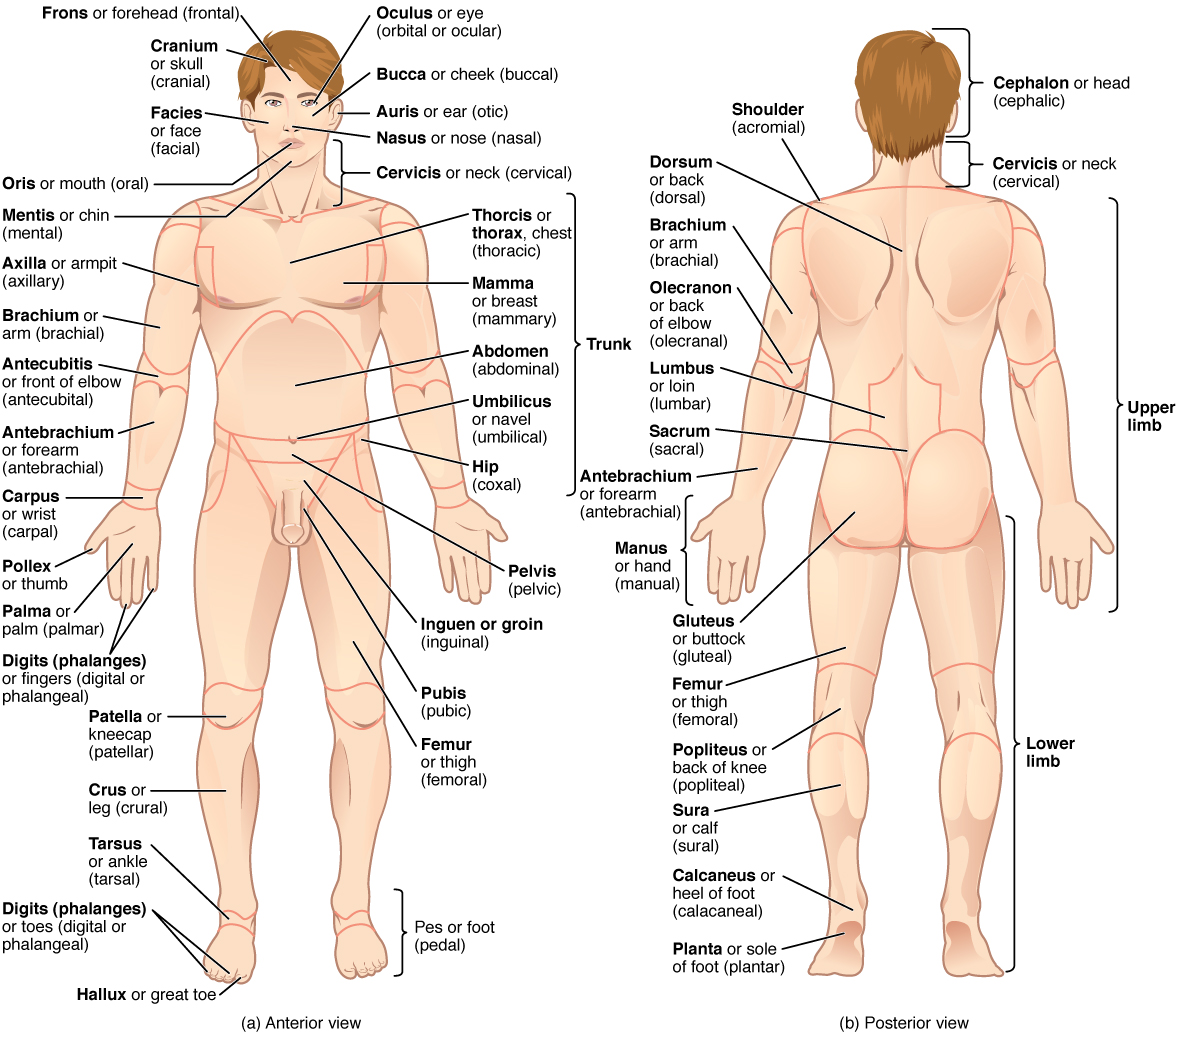 Worksheets Anatomical Terms Worksheet anatomical terminology anatomy and physiology i this illustration shows an anterior posterior view of the human body cranial region